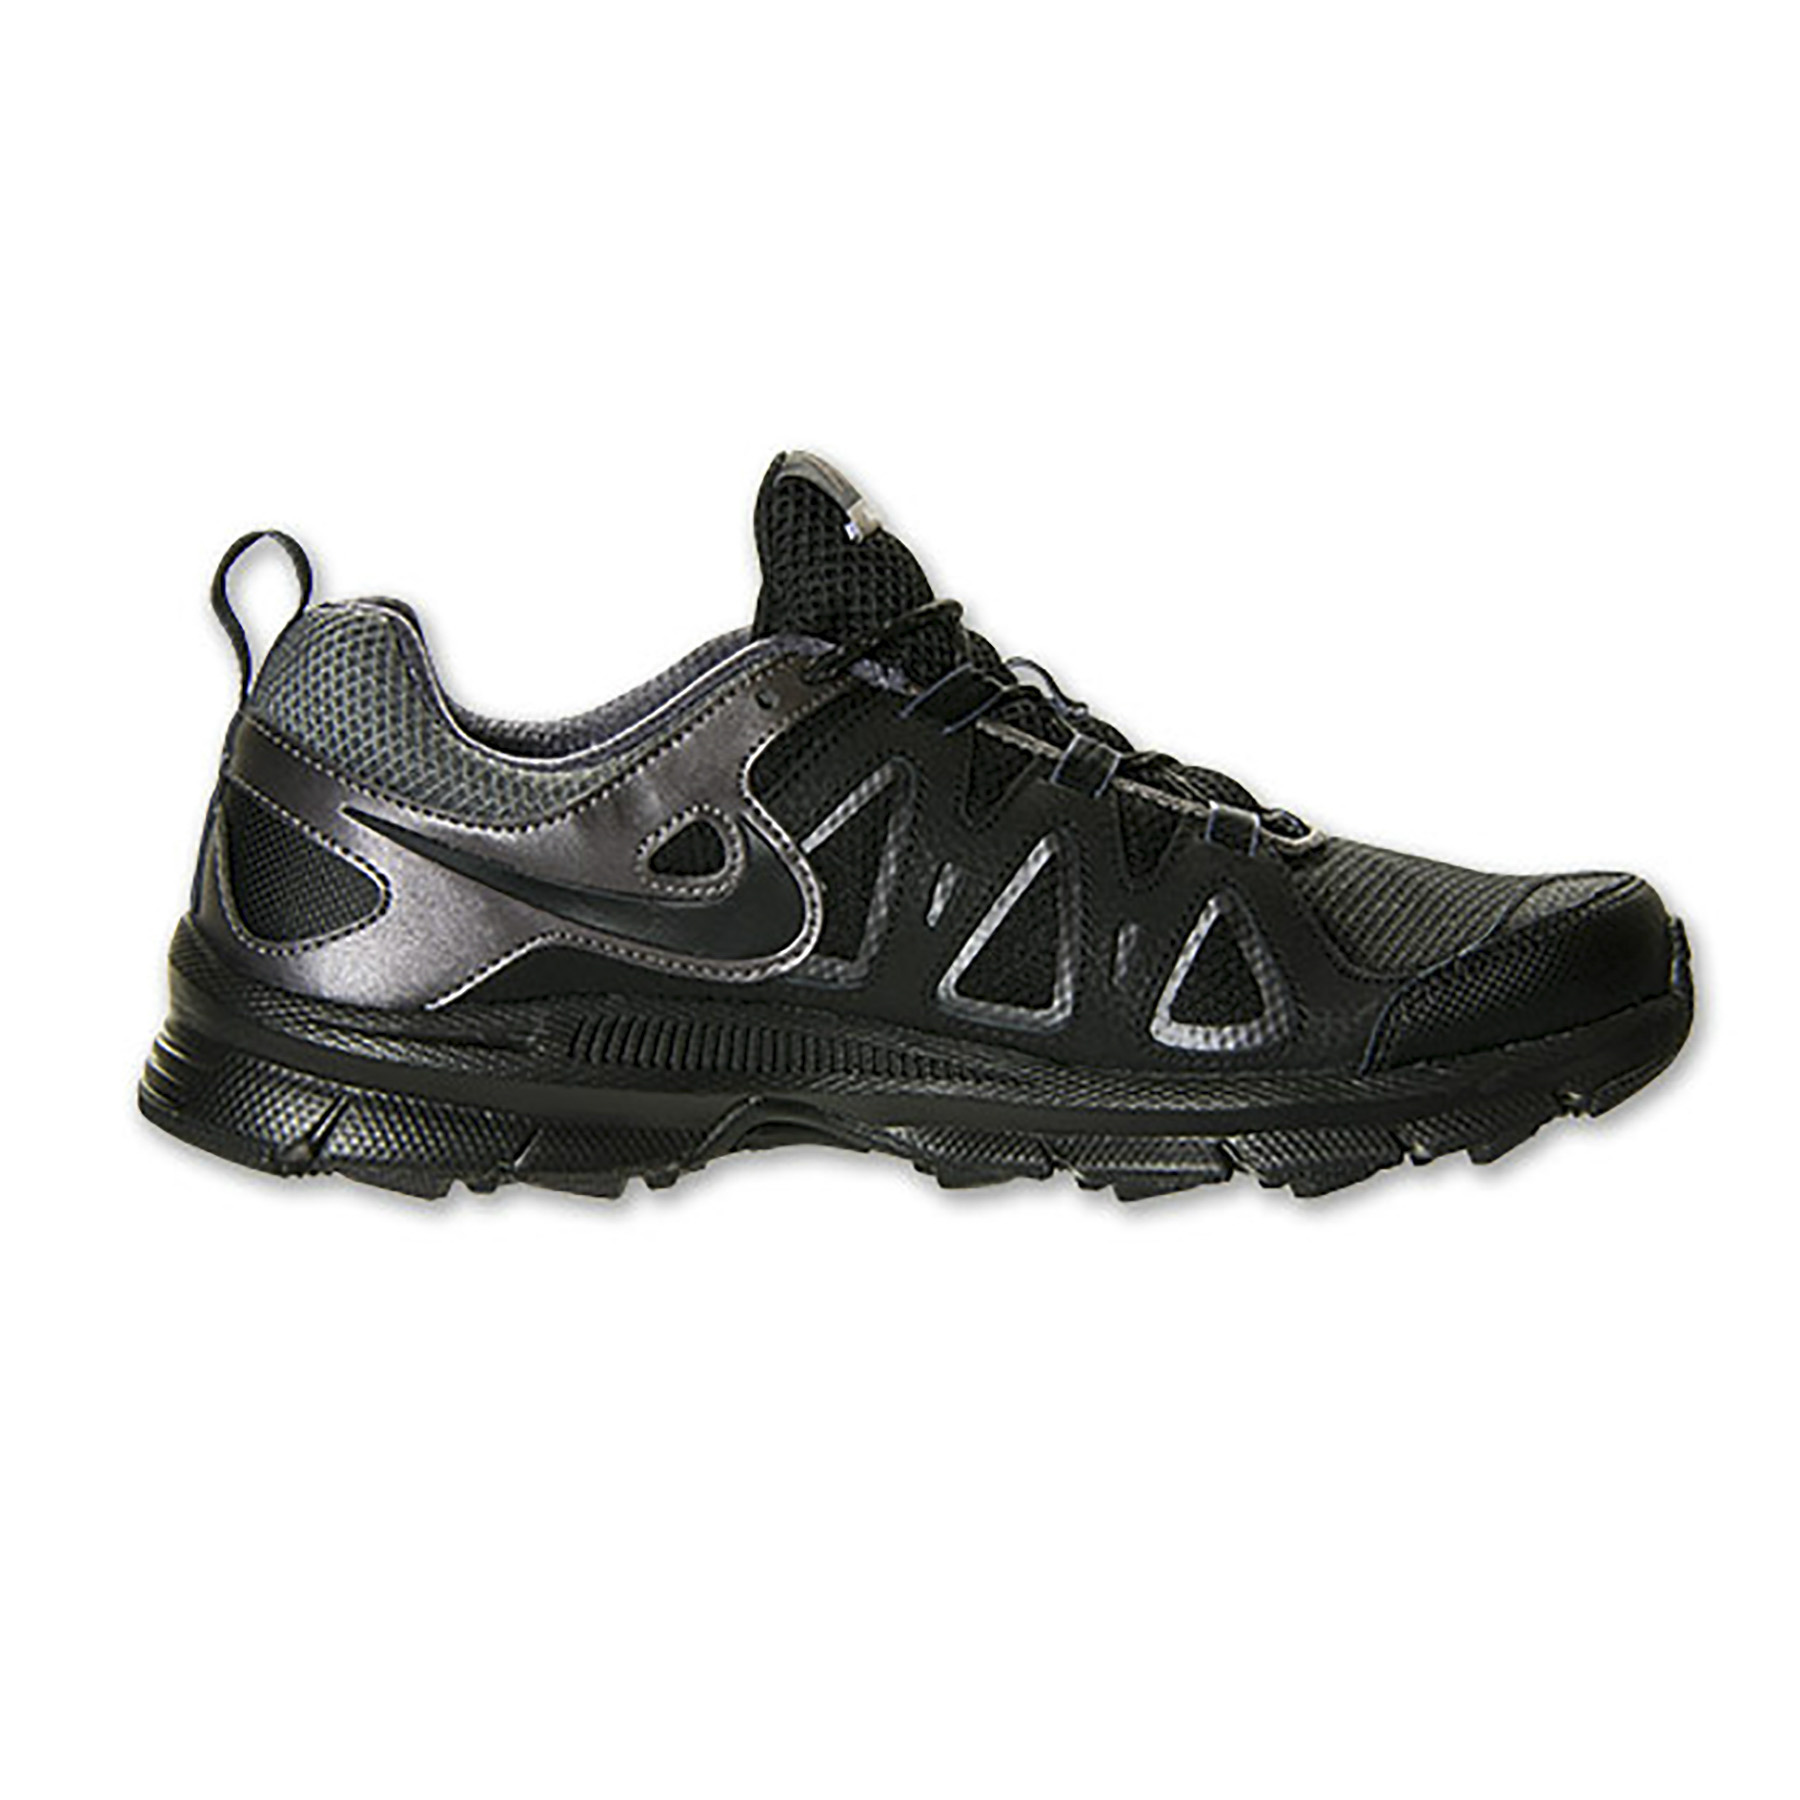 Nike Air Alvord 10 Running Shoes (Black/Metallic Grey)-8R